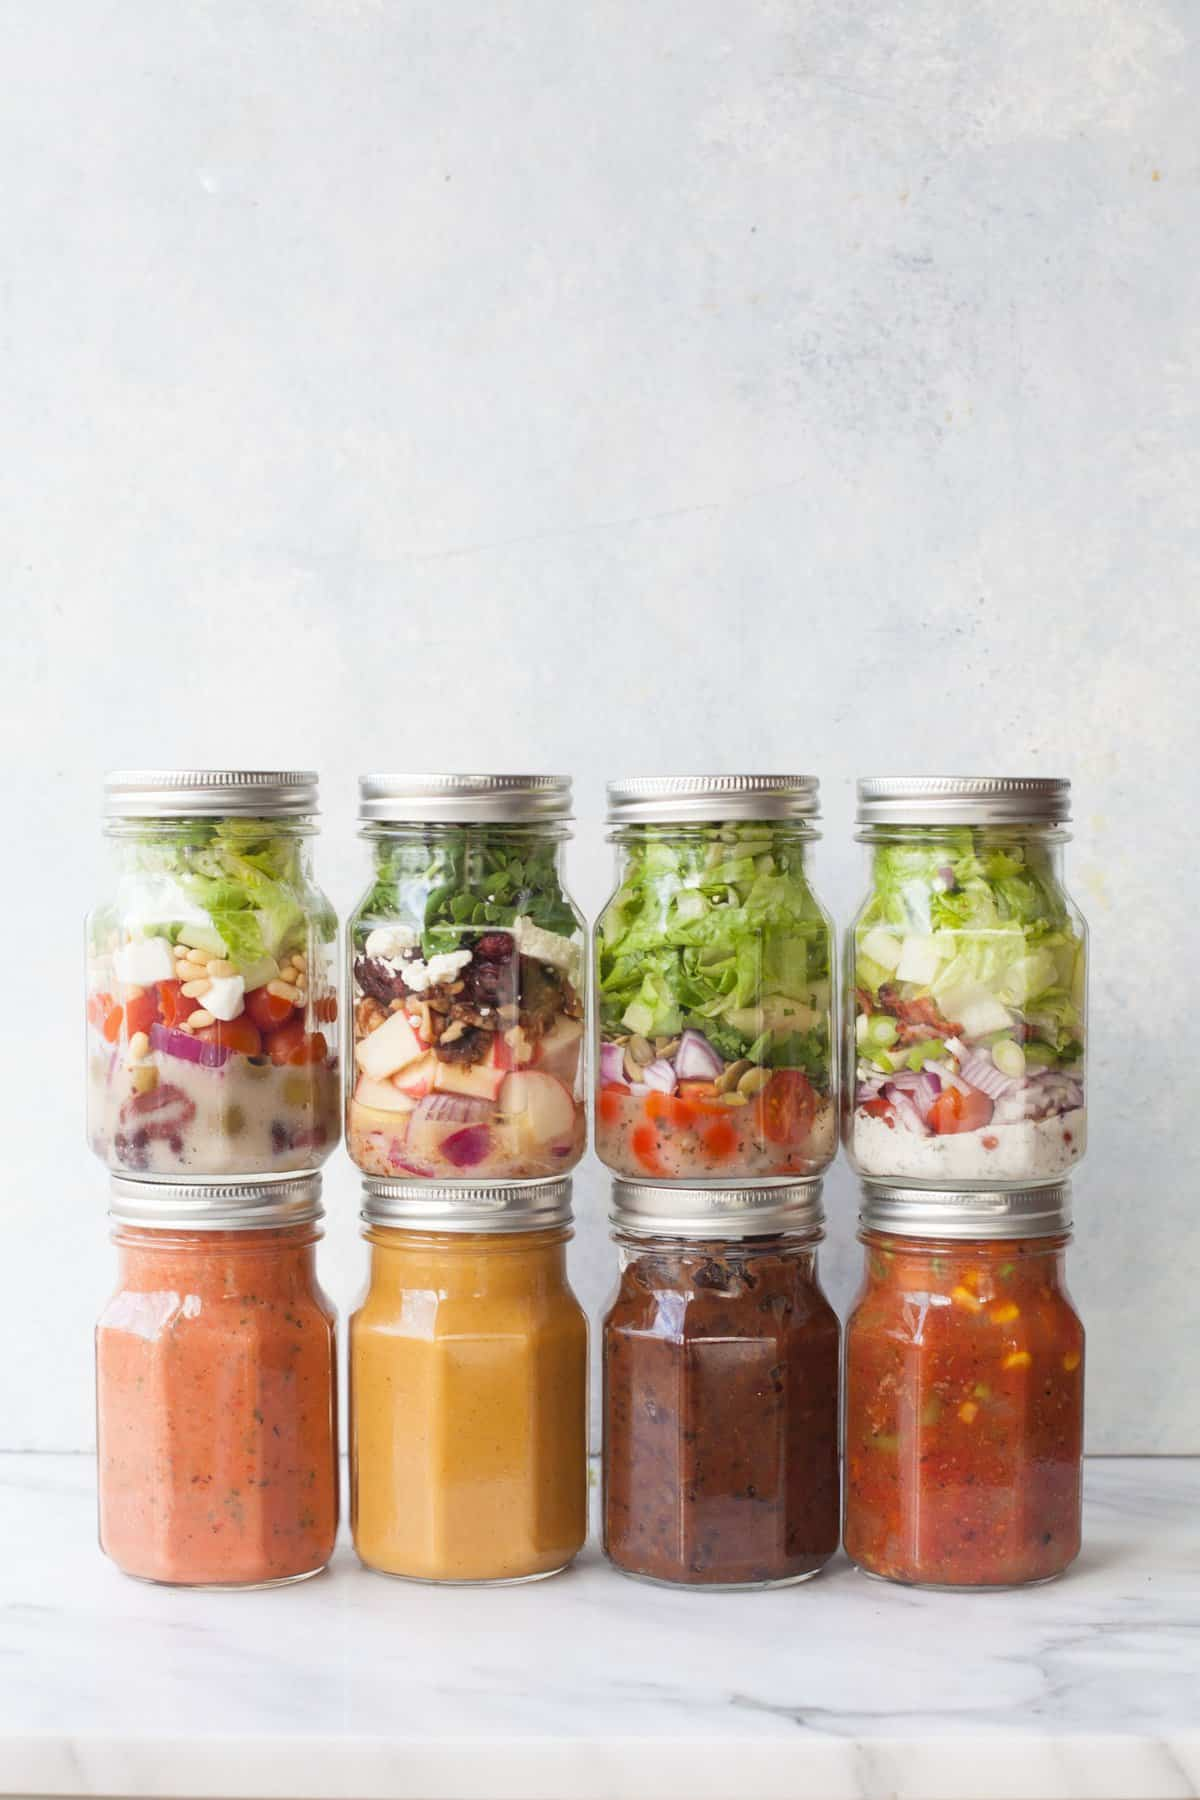 Eight glass mason jars stacked, half with salads, and half with soups on a gray background